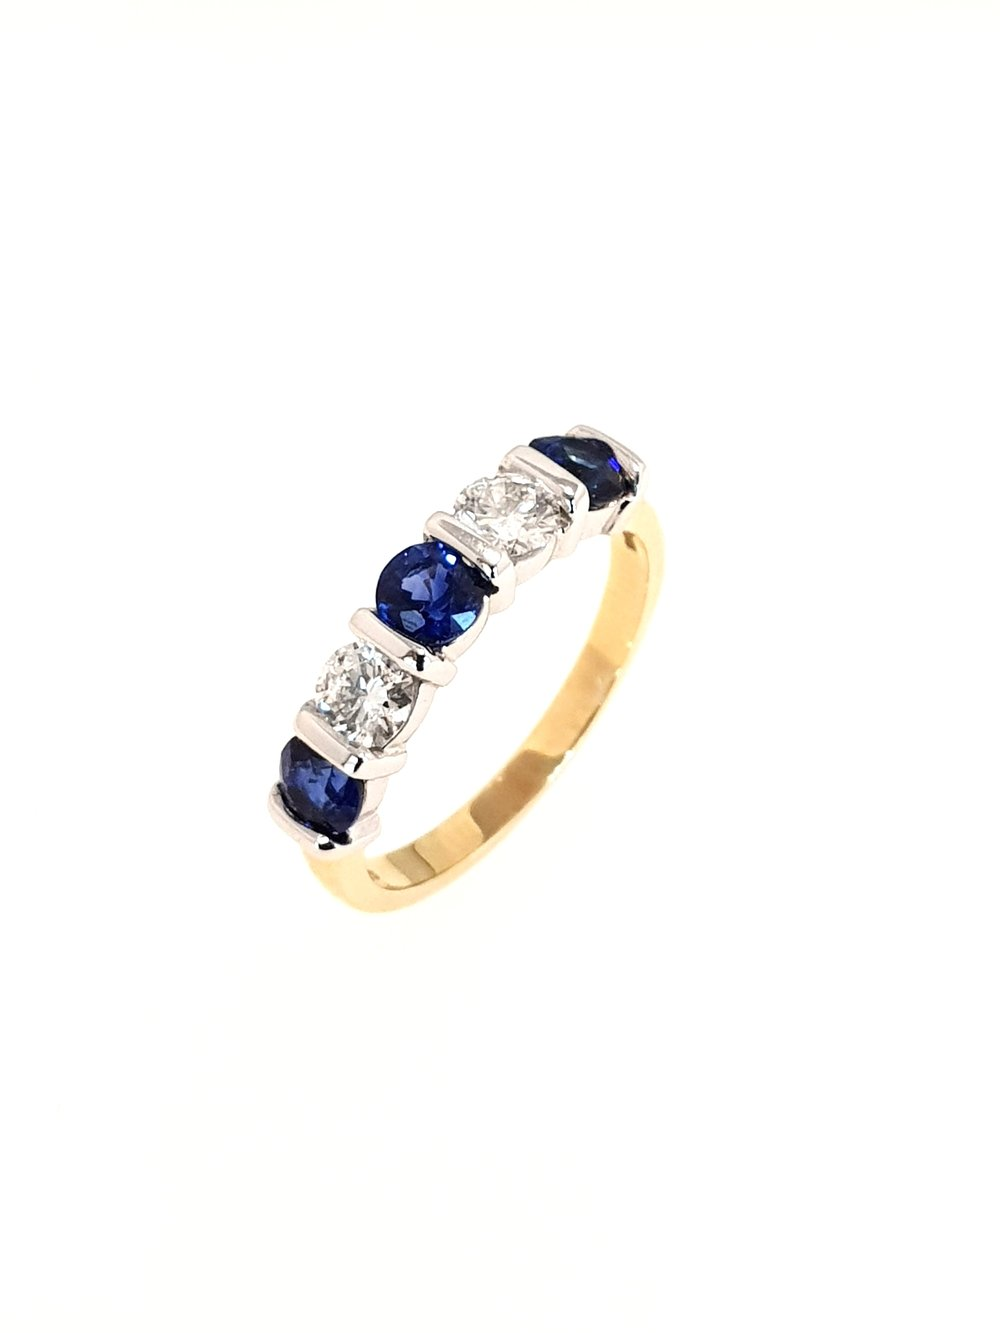 18ct Yellow Gold Sapphire & Diamond Ring  Diamond: .48ct, G, Si1  Stock Code: N8947  £3675